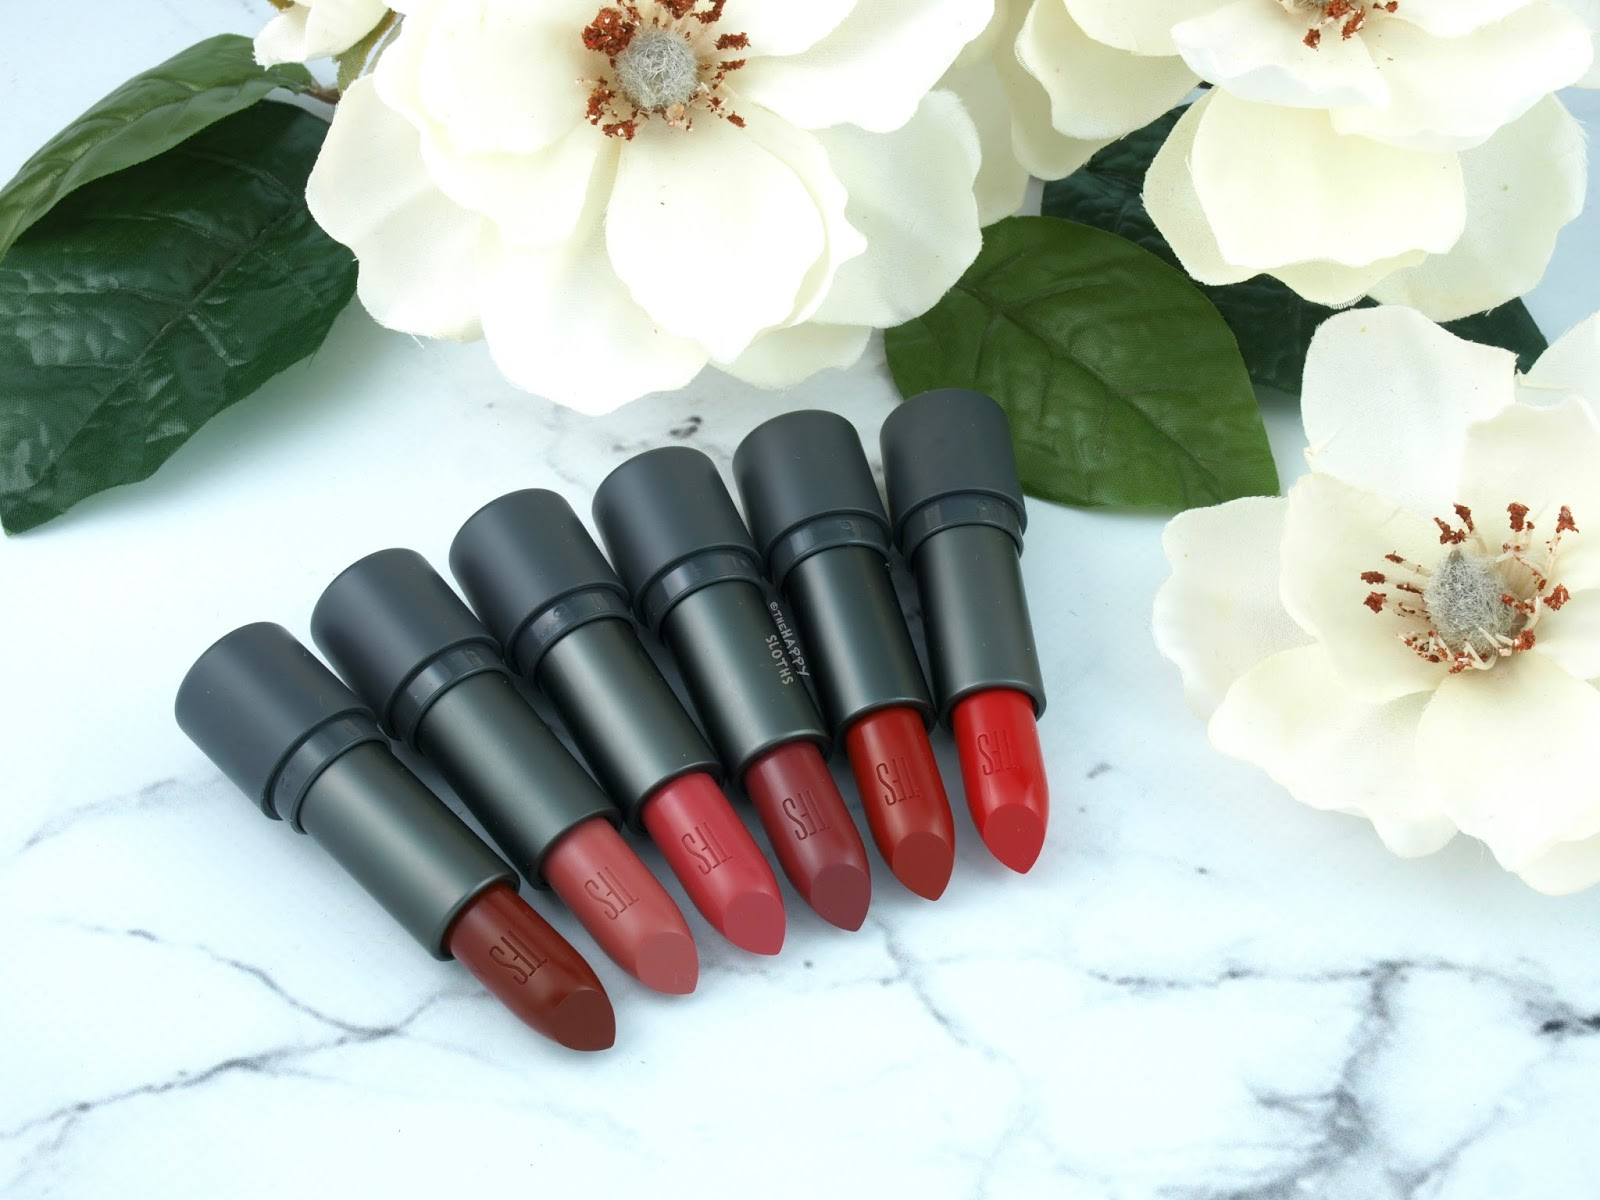 THEFACESHOP Moisture Touch Lipstick: Review and Swatches